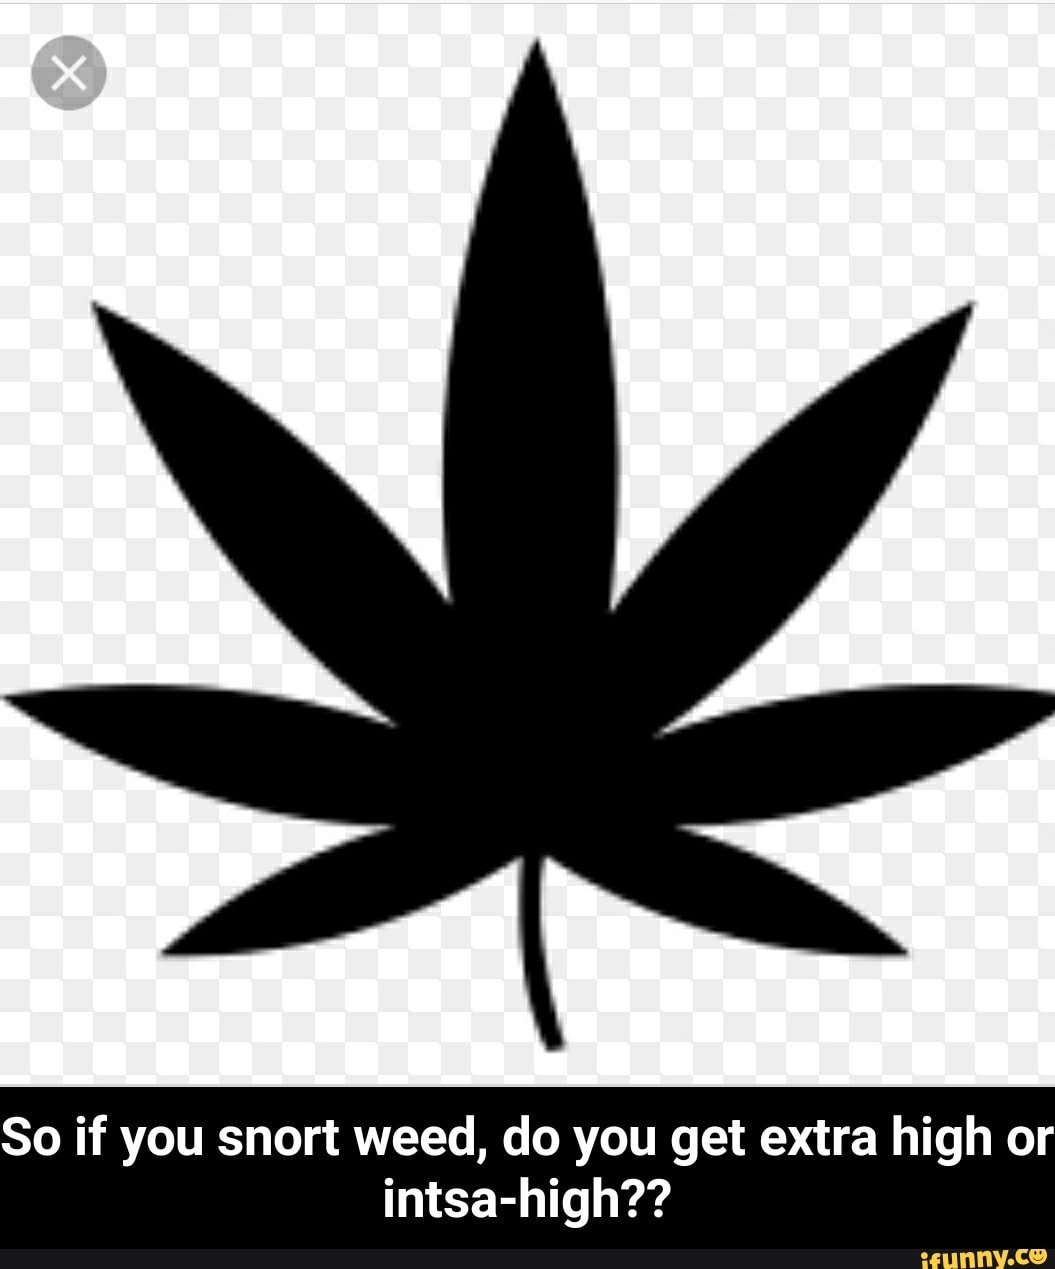 80 If You Snort Weed Do You Get Extra High Or Intsa High So